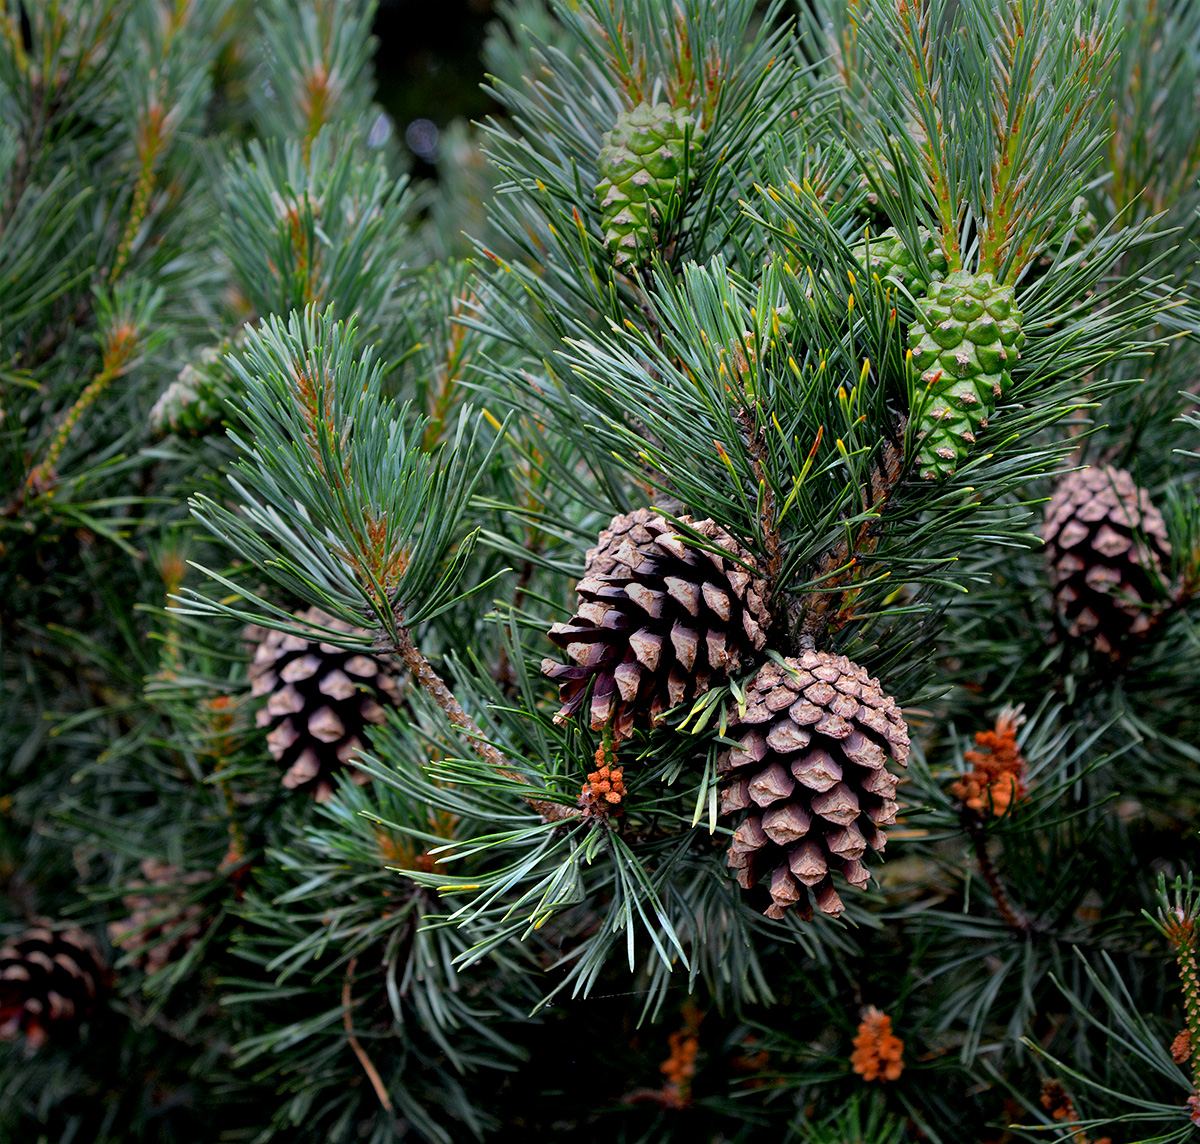 Several generations of Pine cones